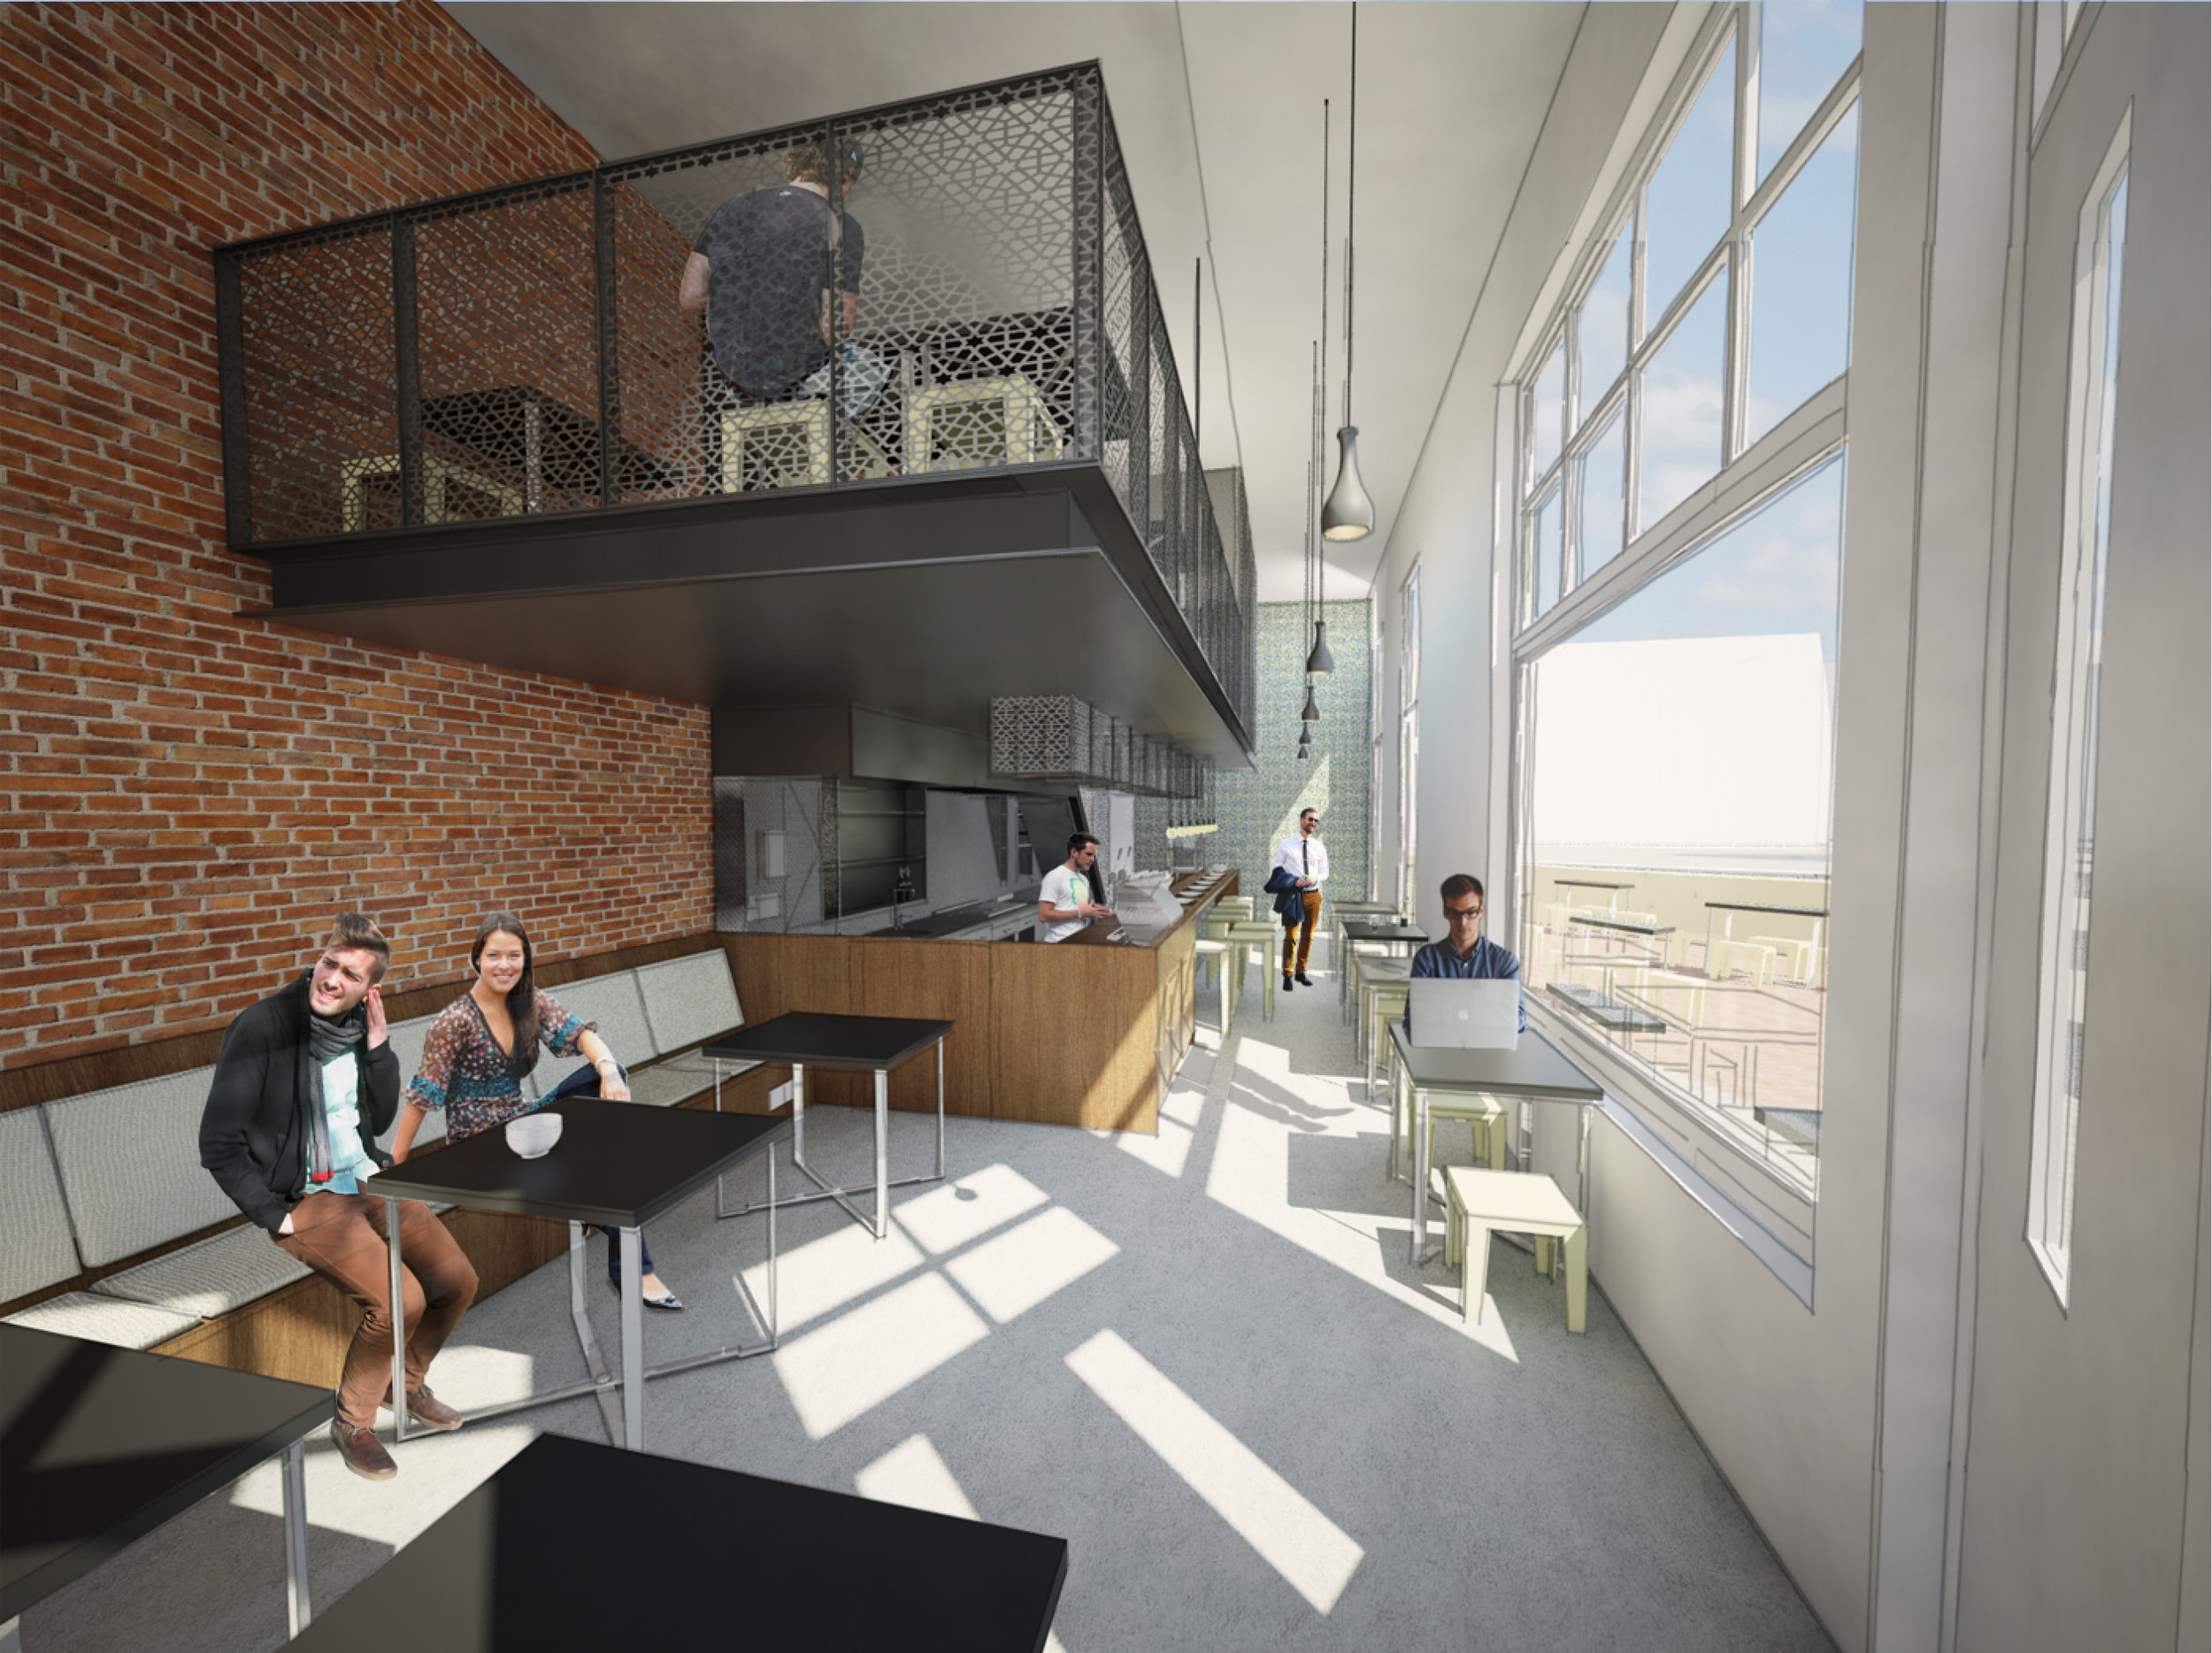 artist impression of the café showing the mezzanine above the bar area with rear kitchen